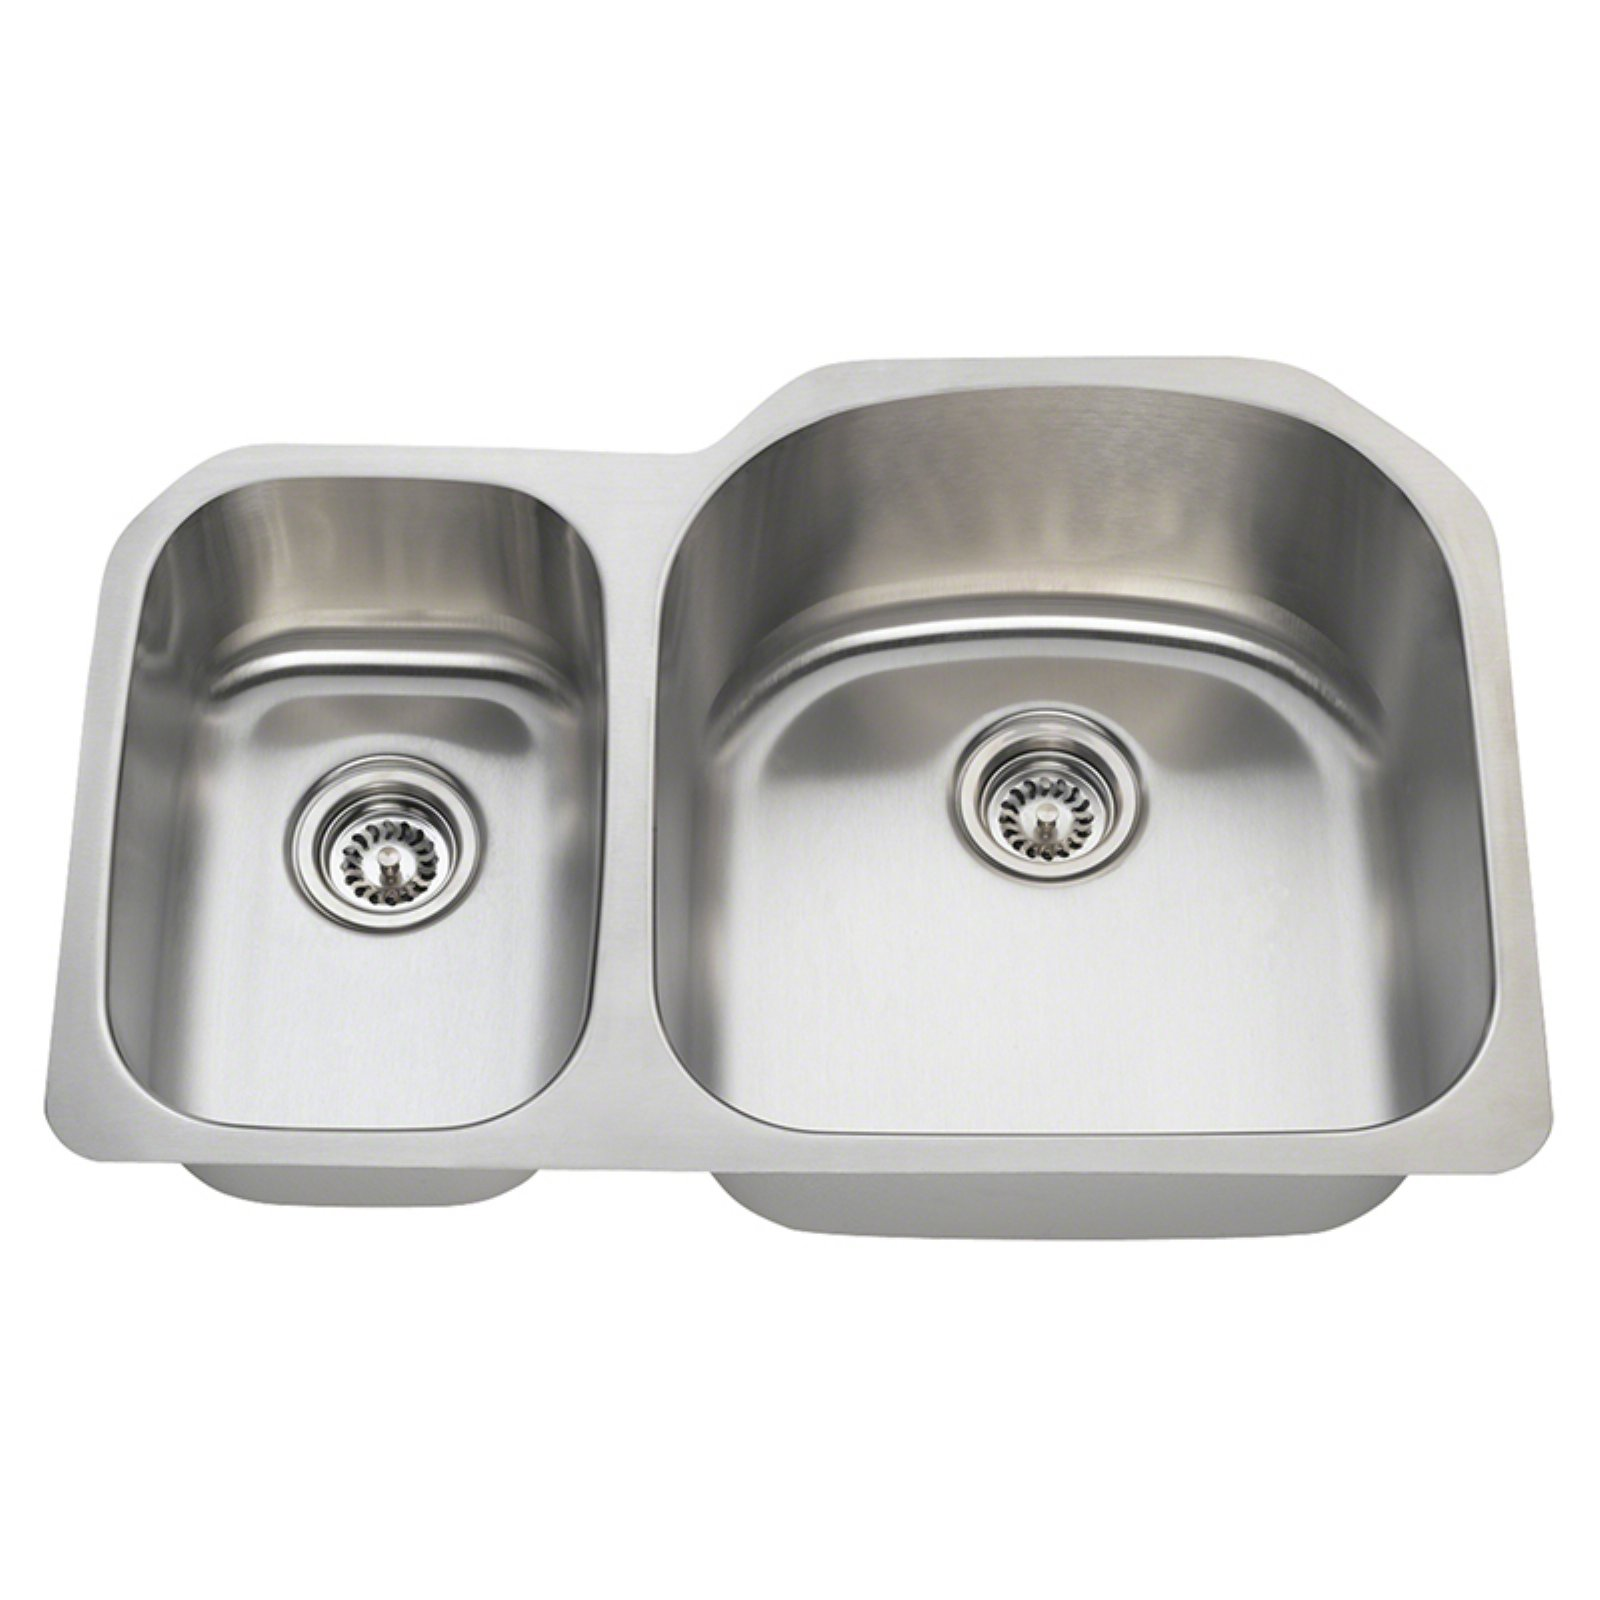 Polaris Sinks PR1213 Double Basin Undermount Kitchen Sink